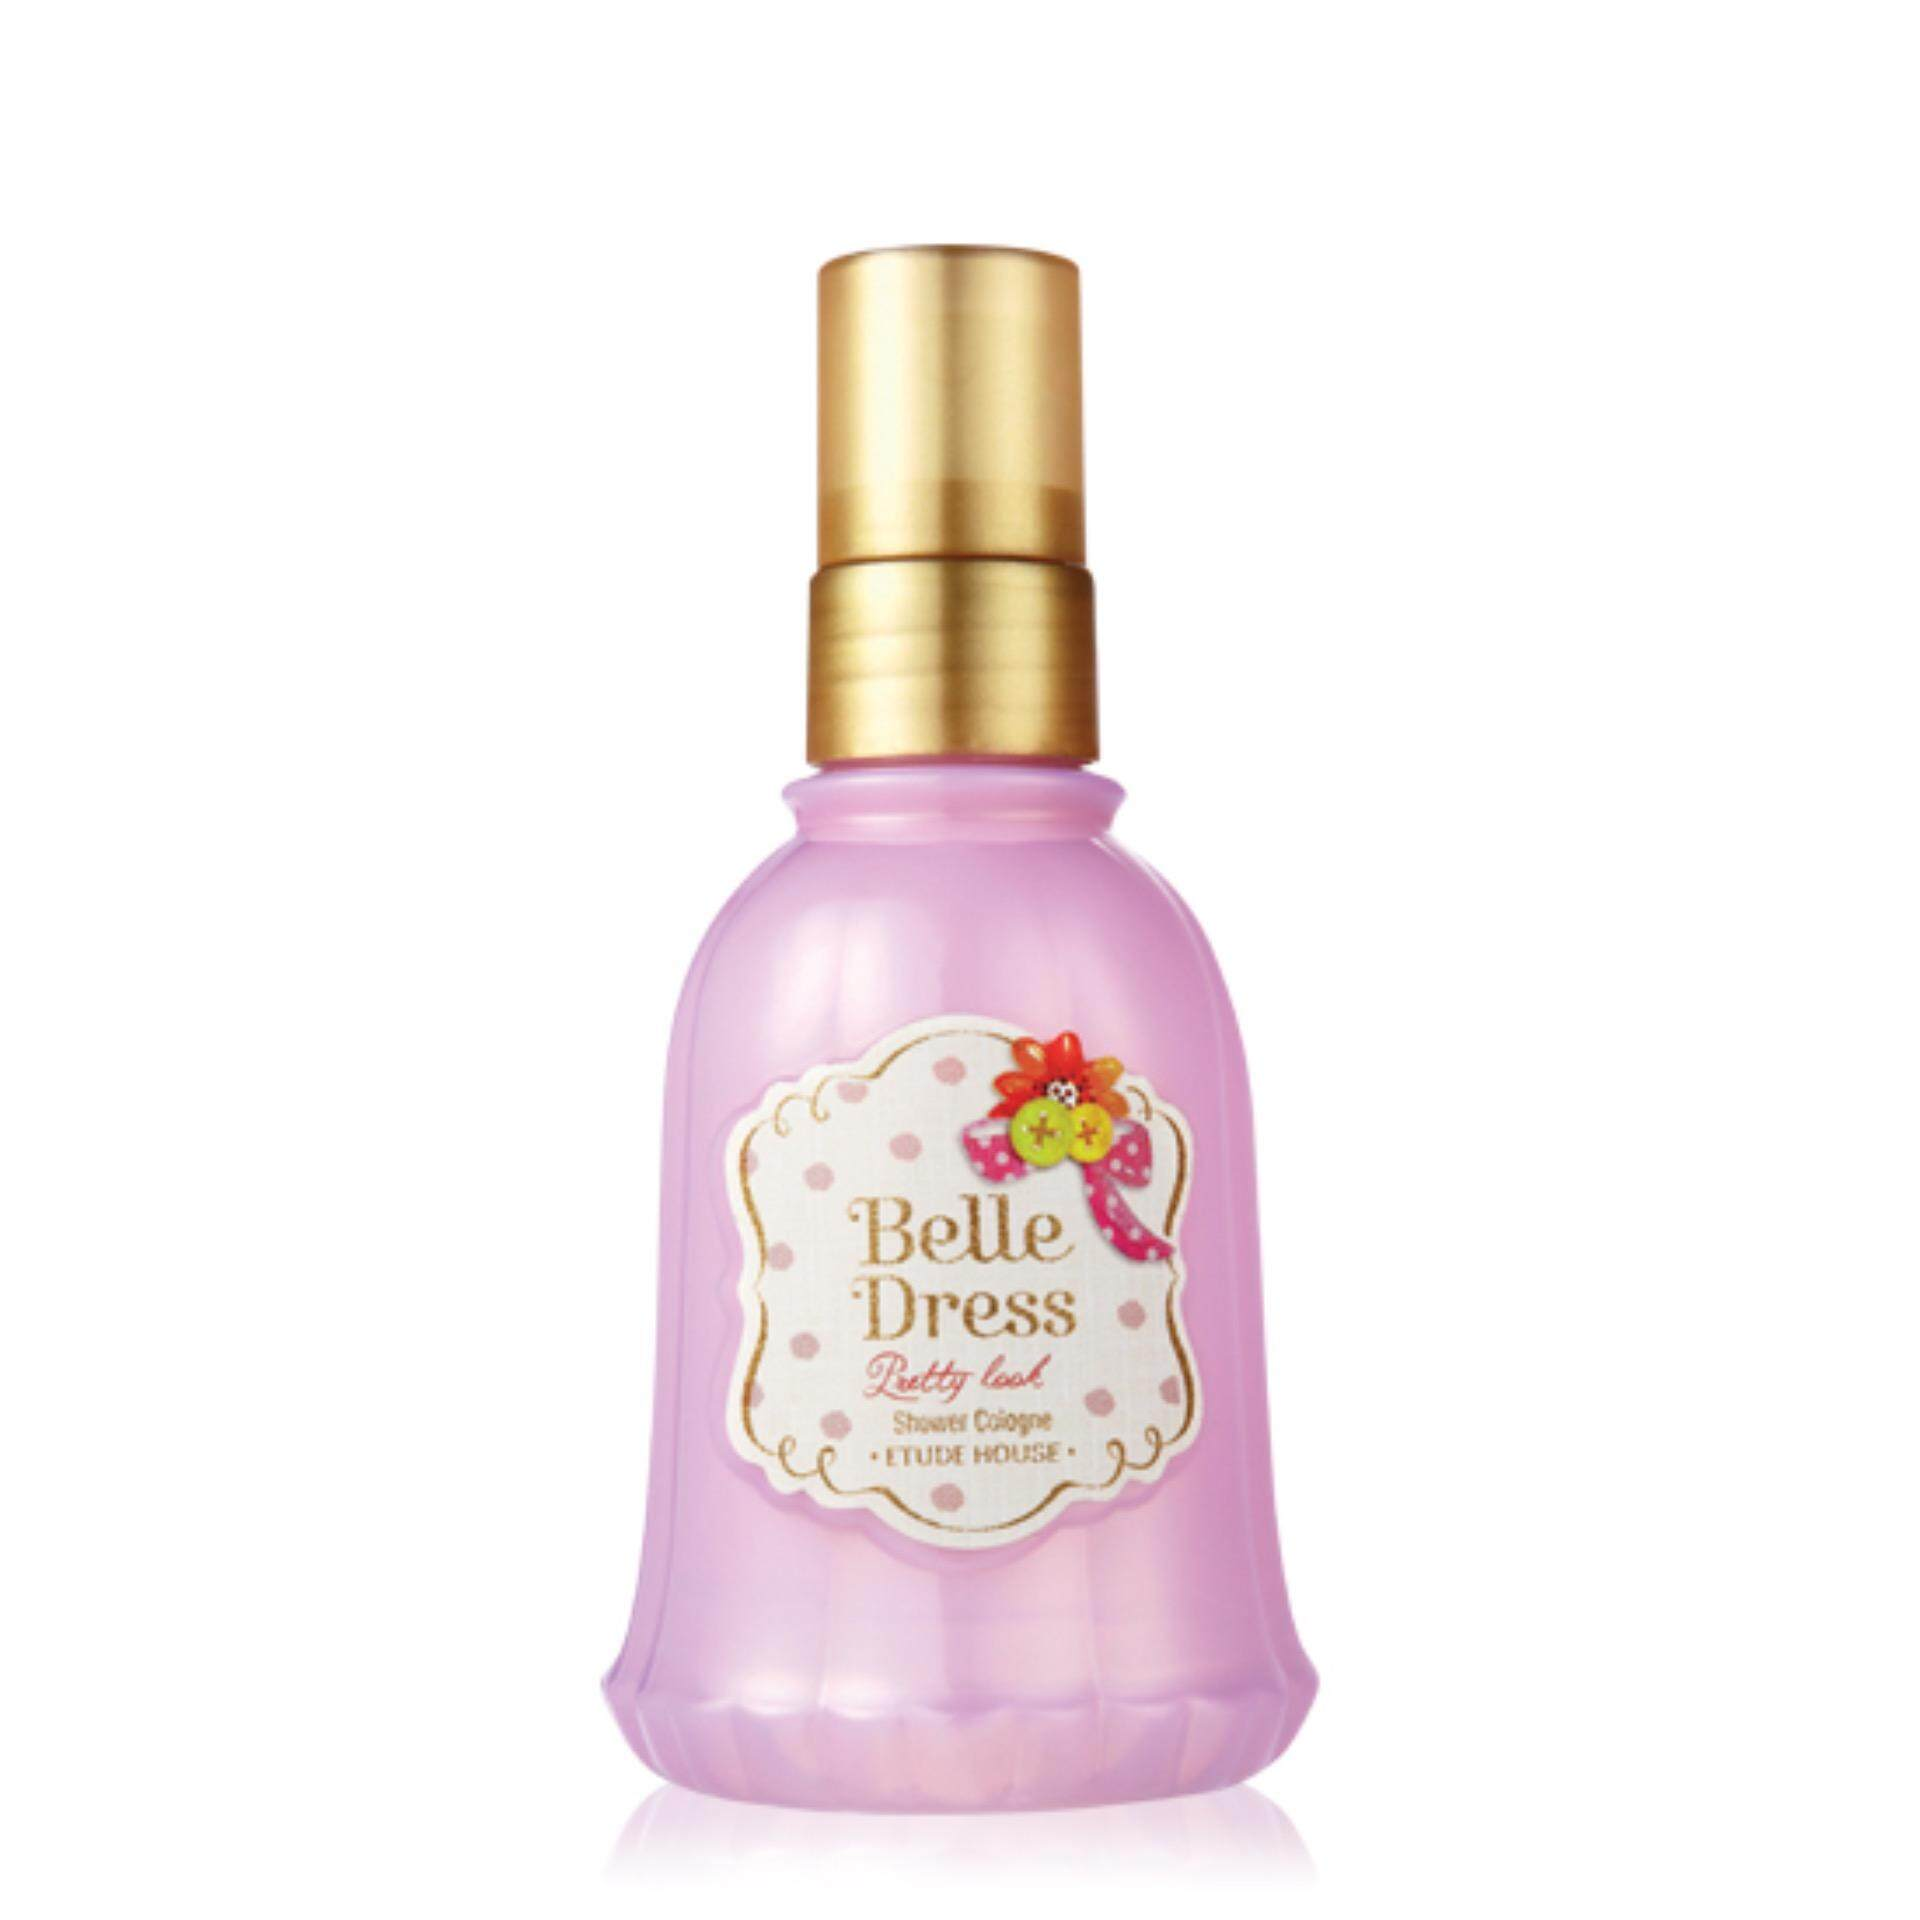 Etude House Belle Dress Shower Cologne 100ml # Pretty Look